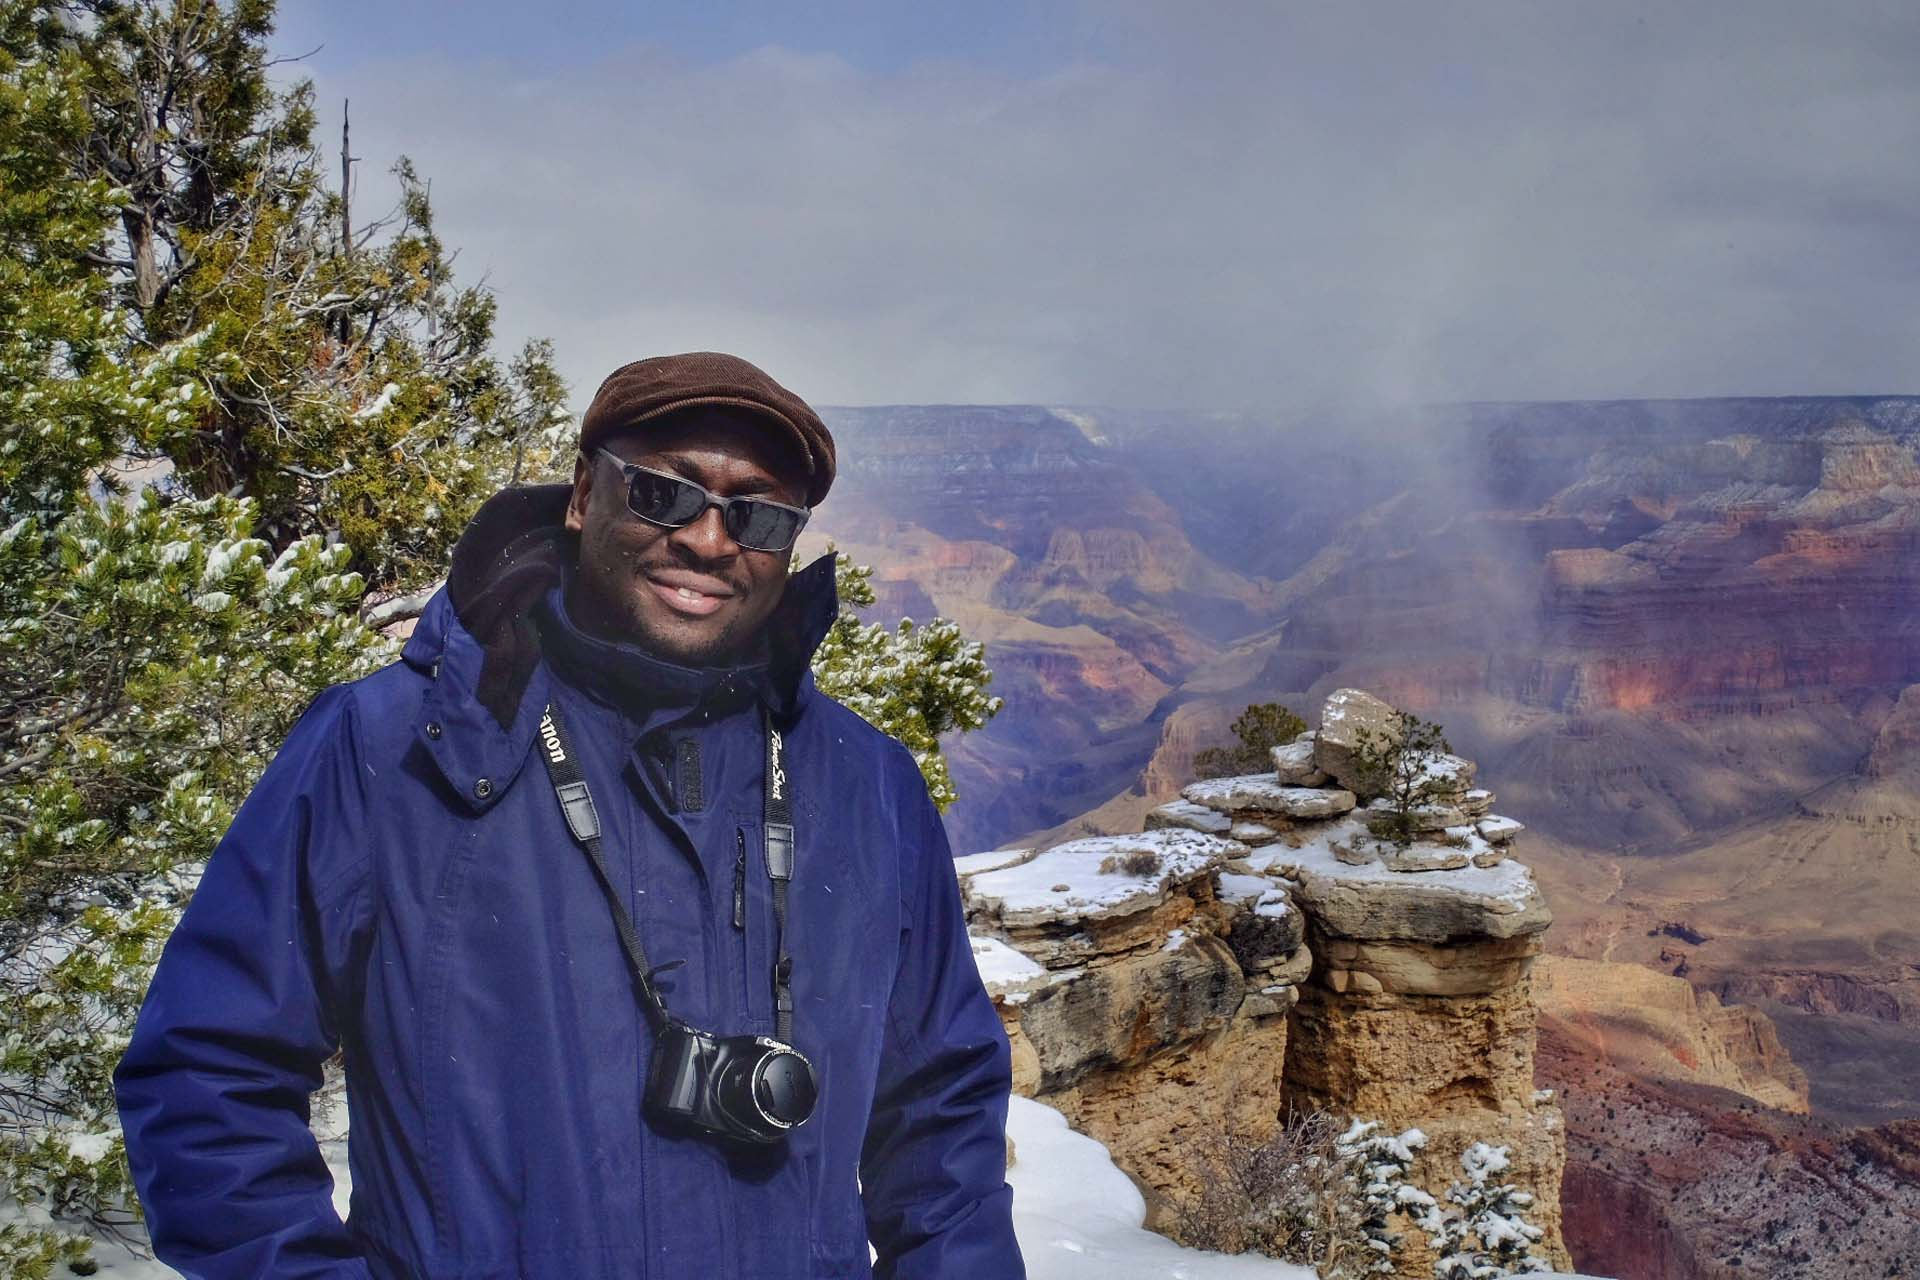 Percy Muleba saw snow for the first time at the Grand Canyon!